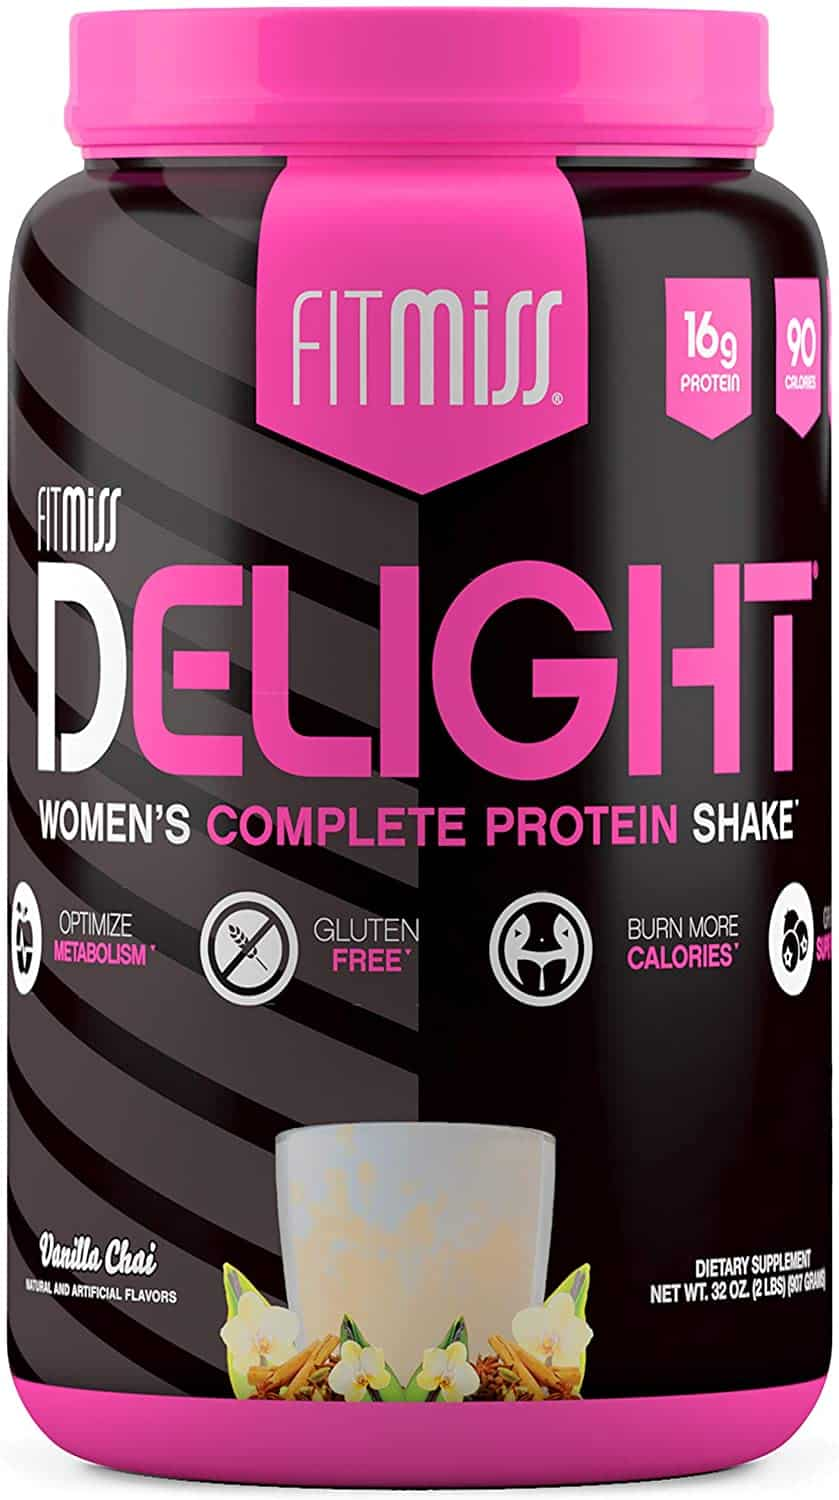 fitmiss delight workout supplement